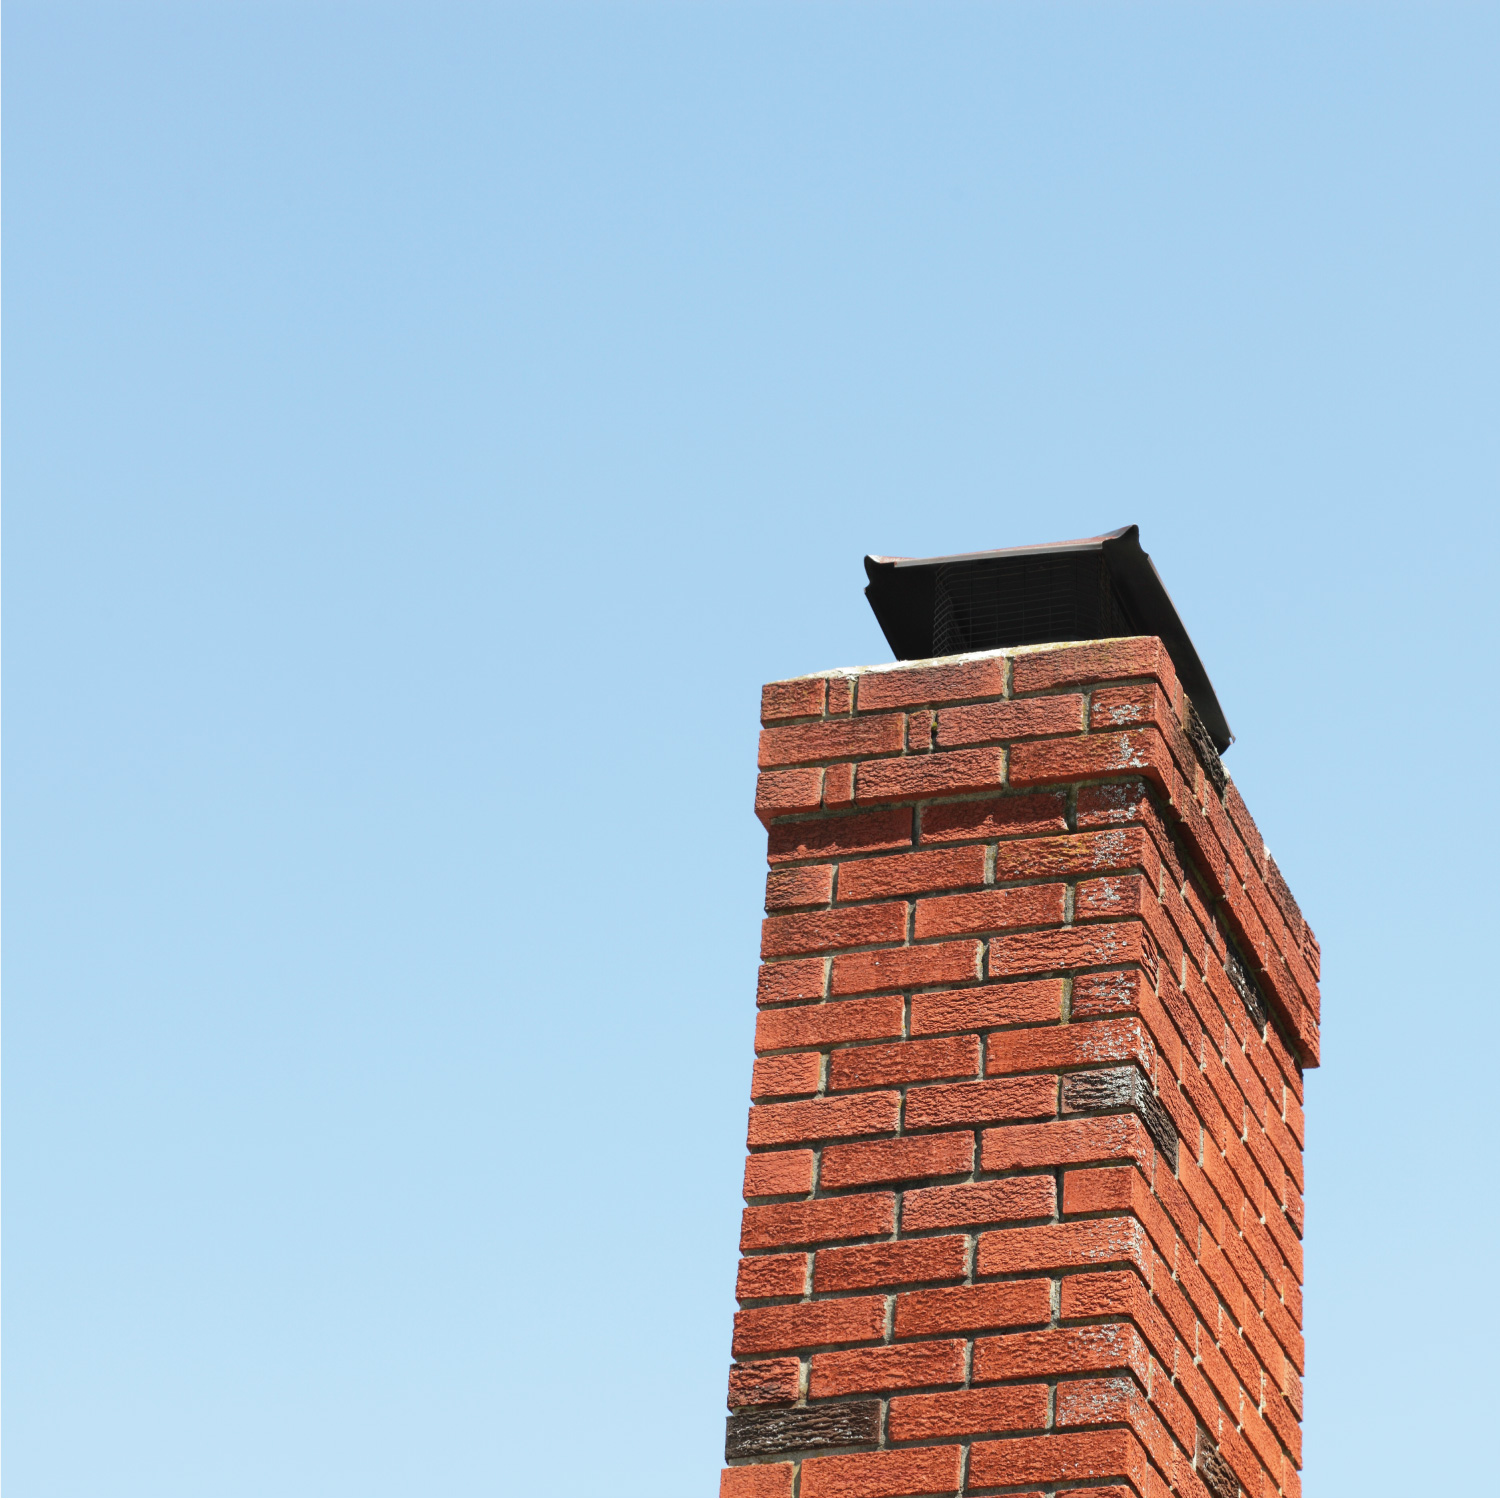 A red brick chimney with a capped metal grate on top to prevent rain, birds and pests from entering against a blue sky